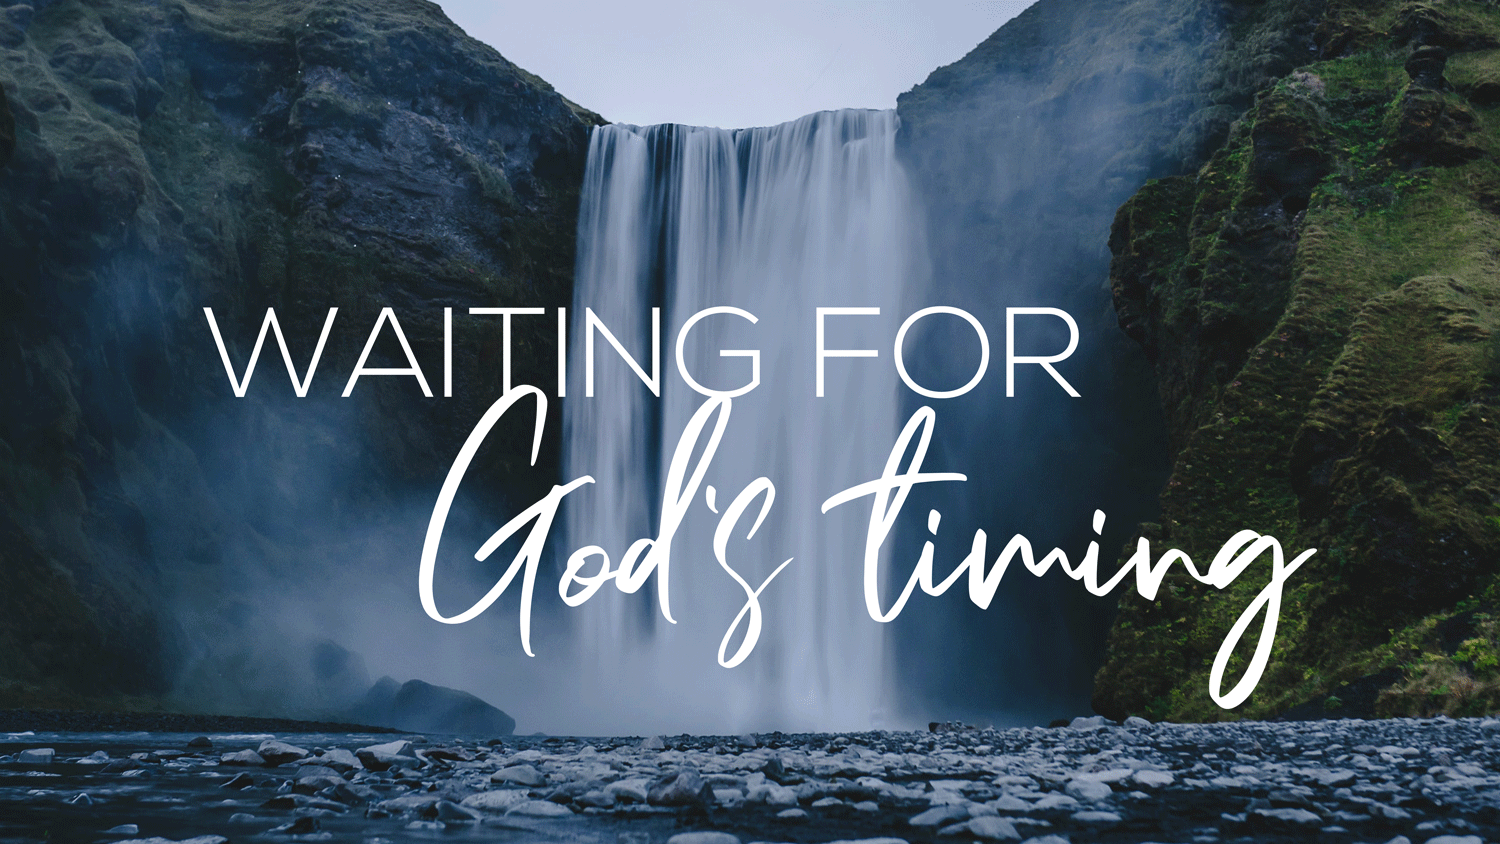 Waiting For God's Timing